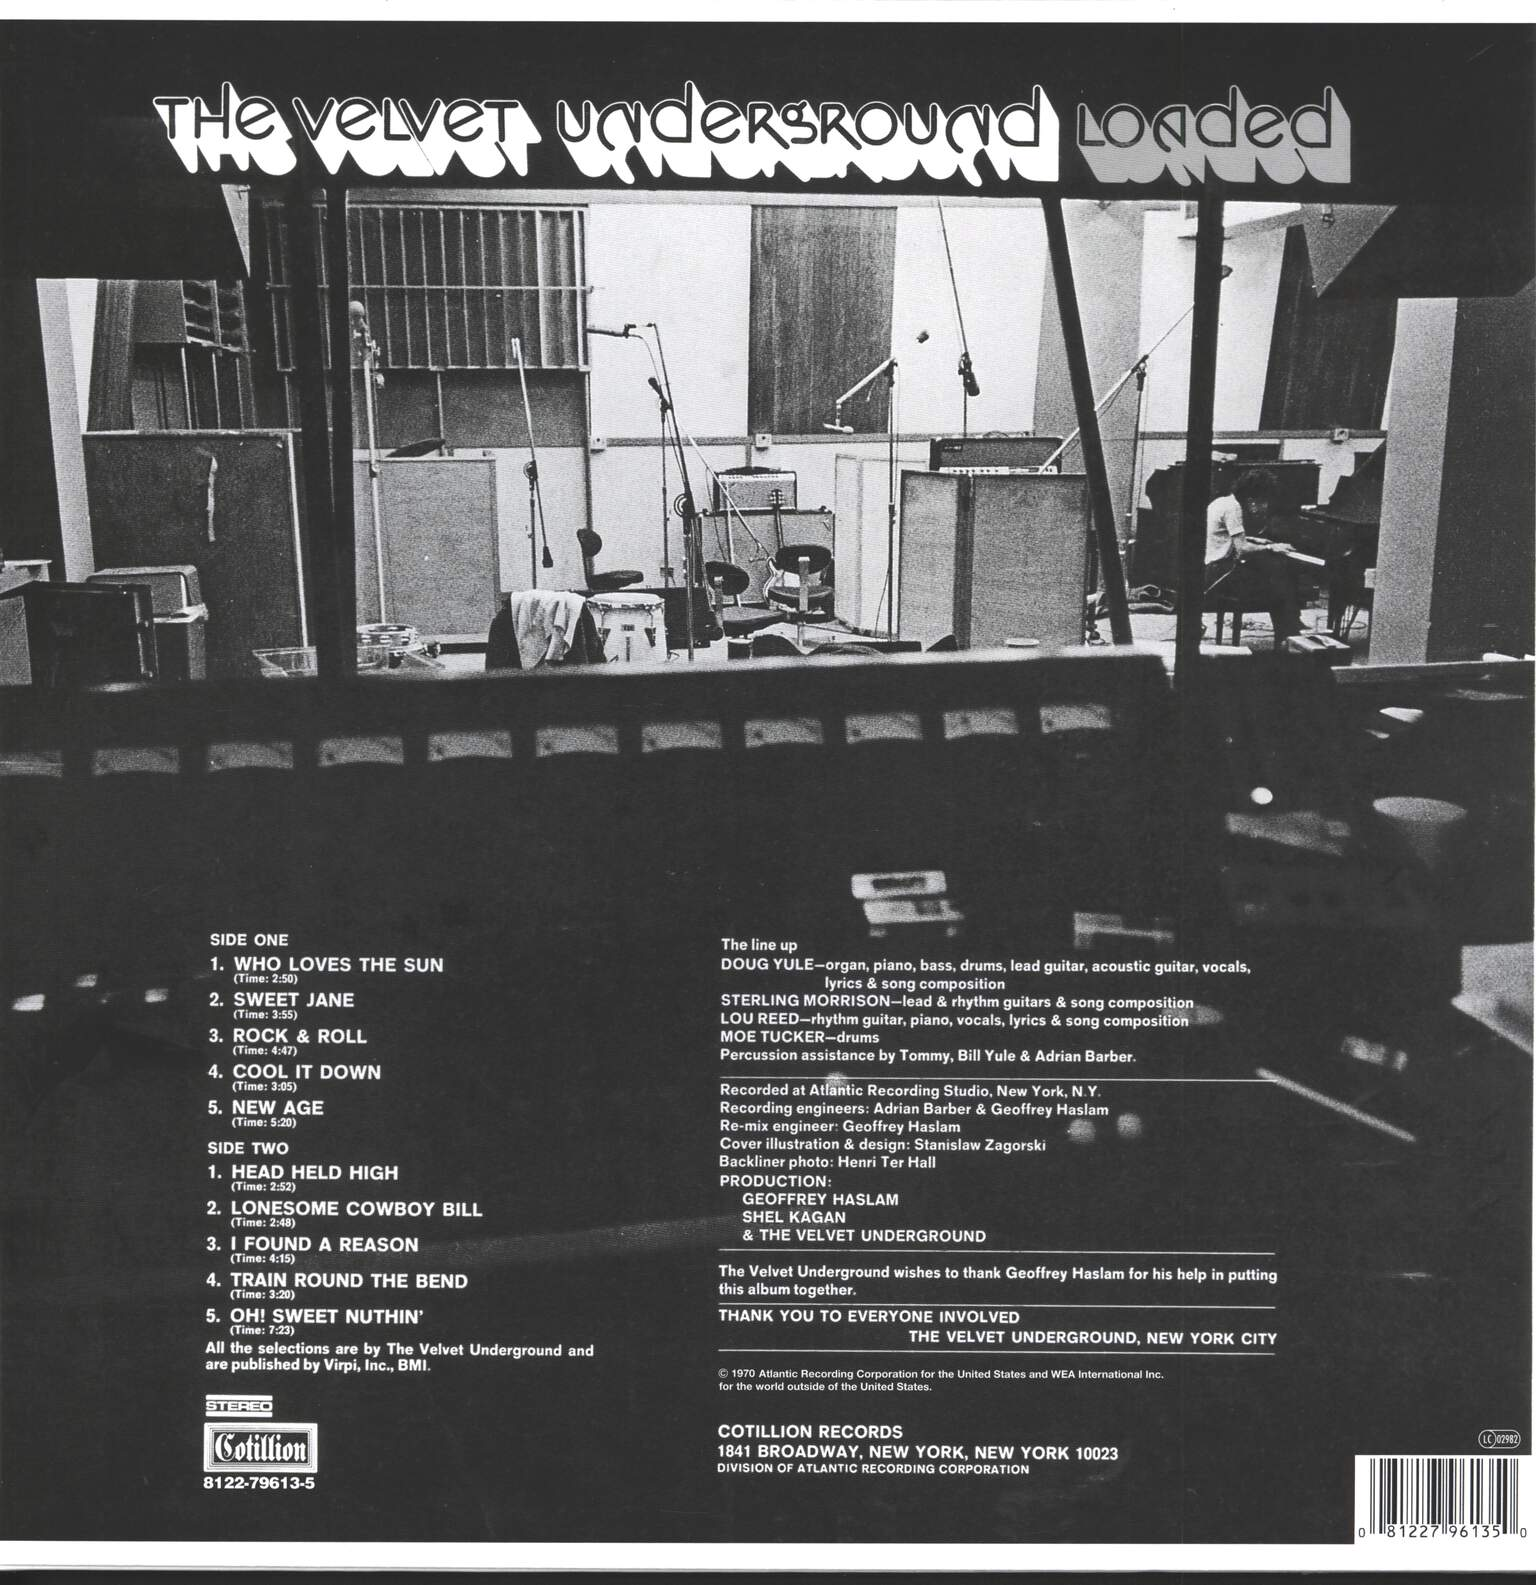 The Velvet Underground: Loaded, 1×LP (Vinyl)